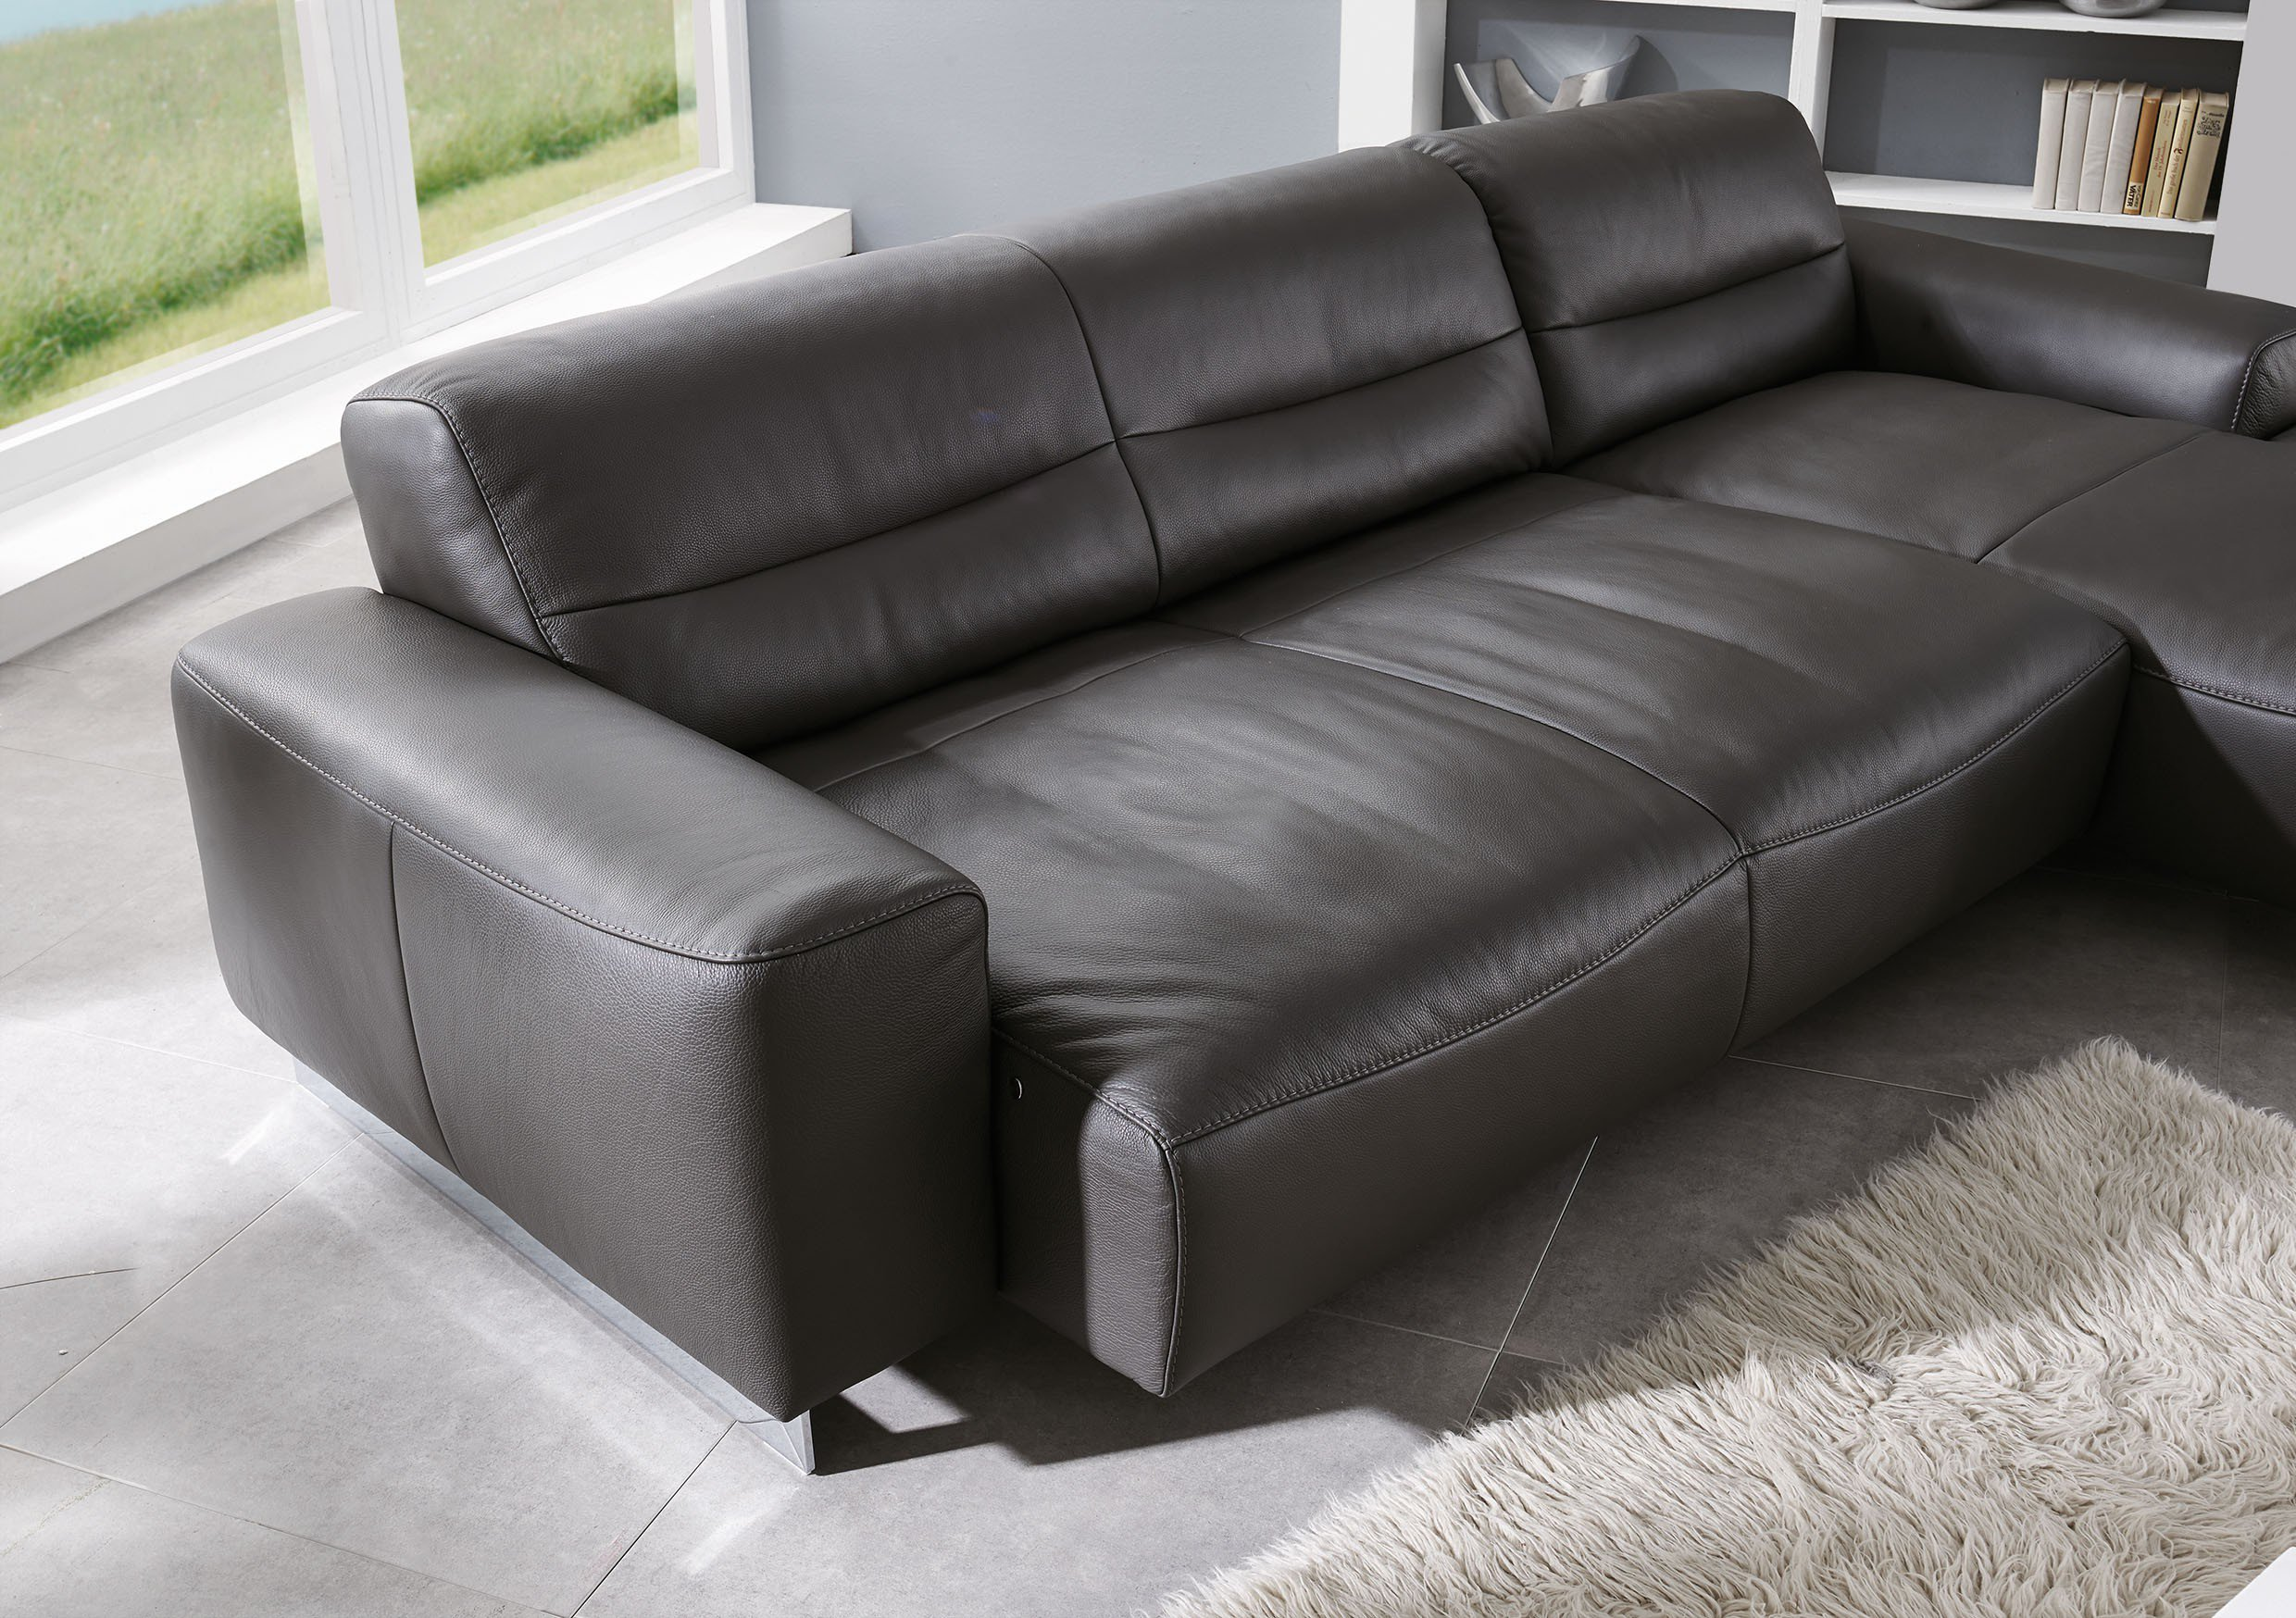 Willi Schillig 20560 William Ledersofa Graphite